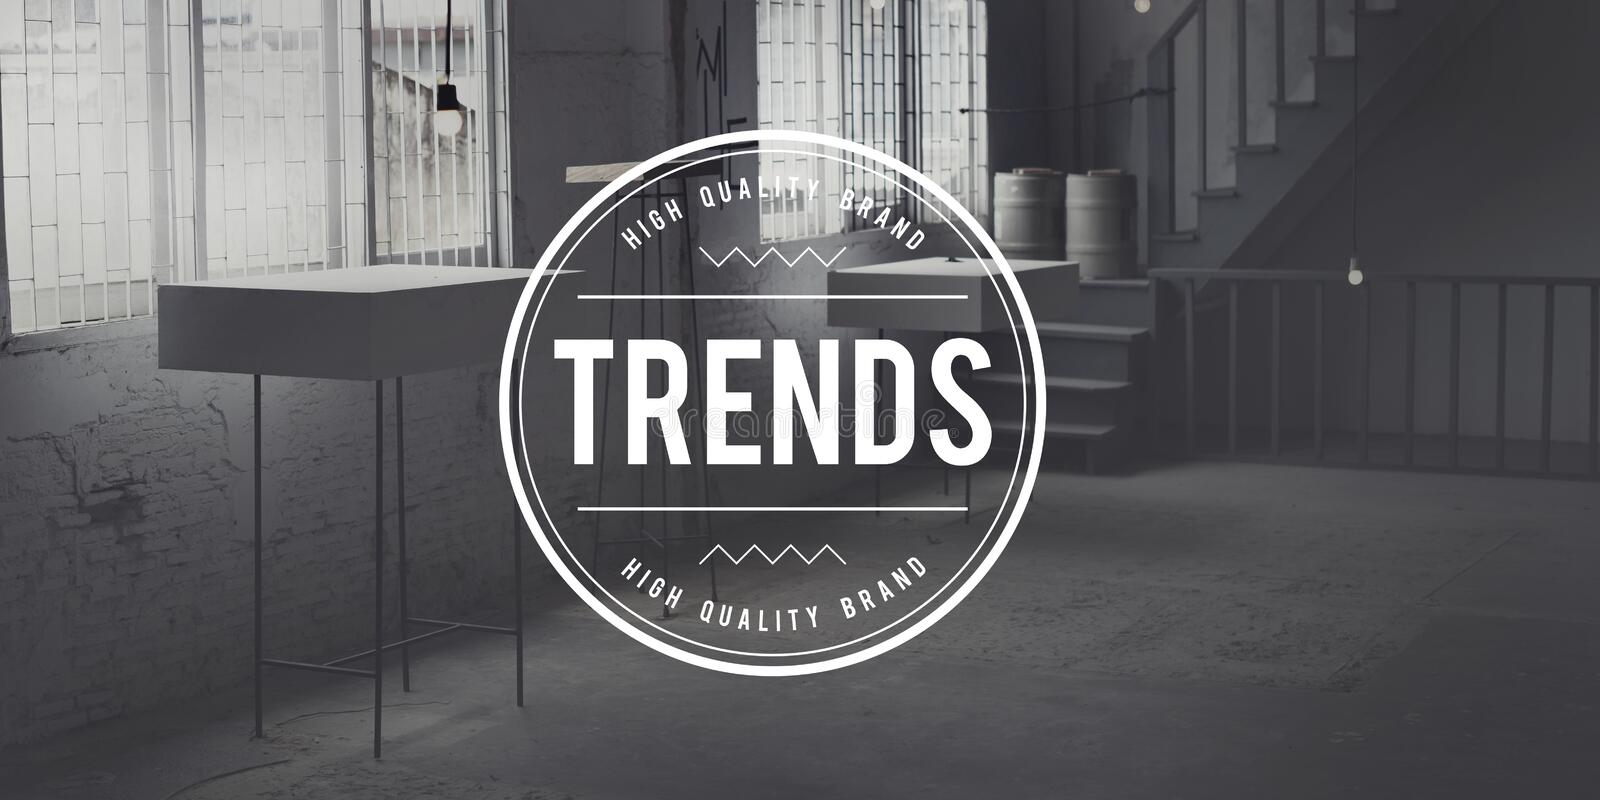 Trends Fashion Marketing Modern New Style Hot Concept royalty free stock photos